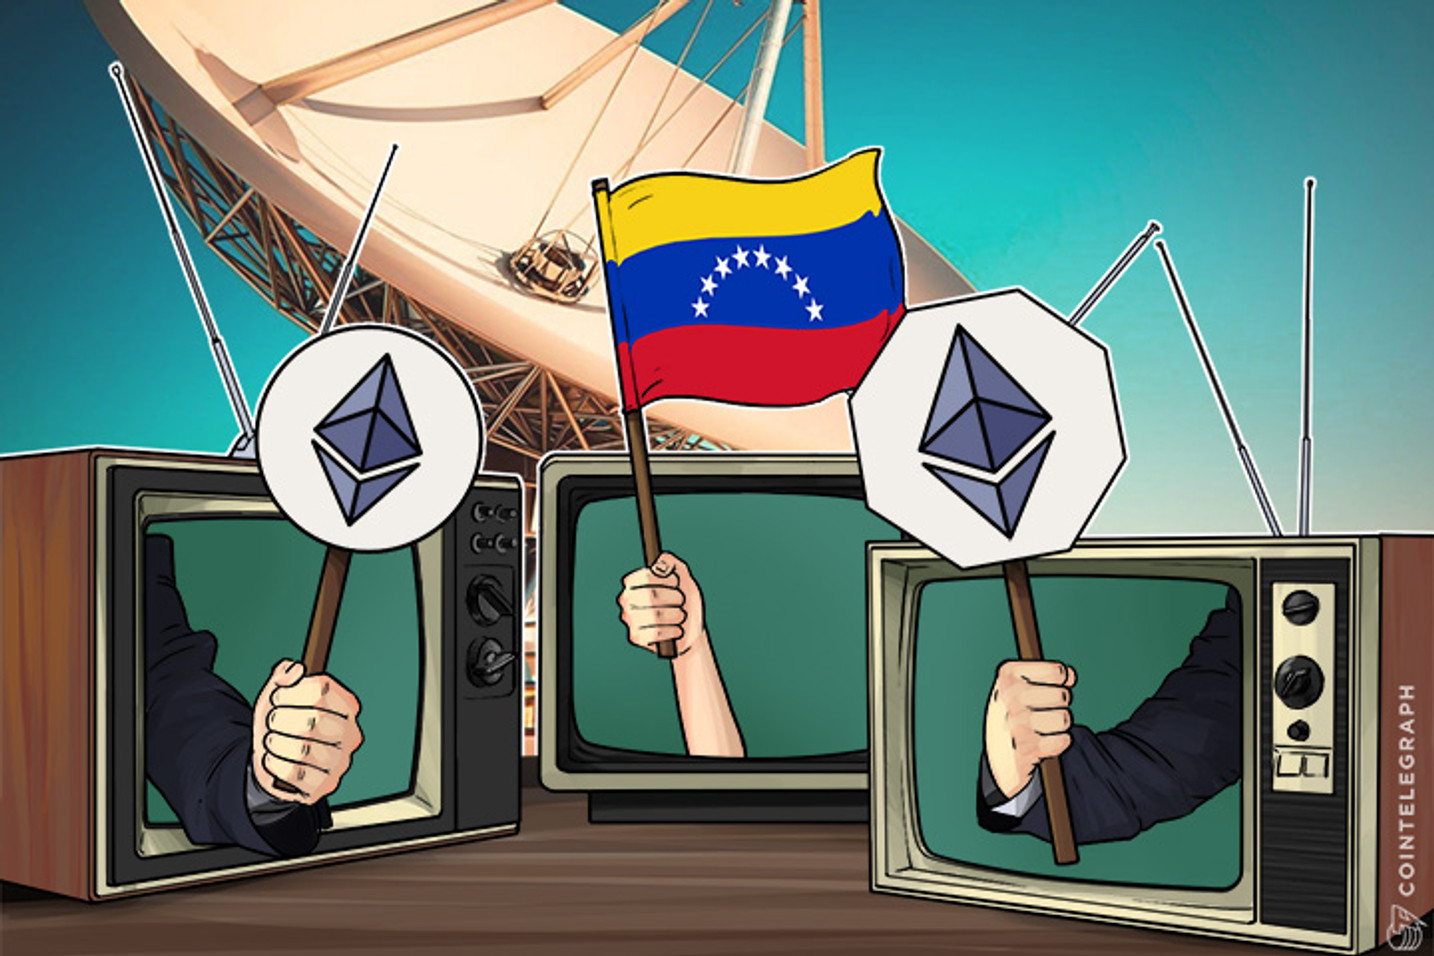 Venezuelan Bitcoin Miners Turning to Ethereum After Government Crackdown